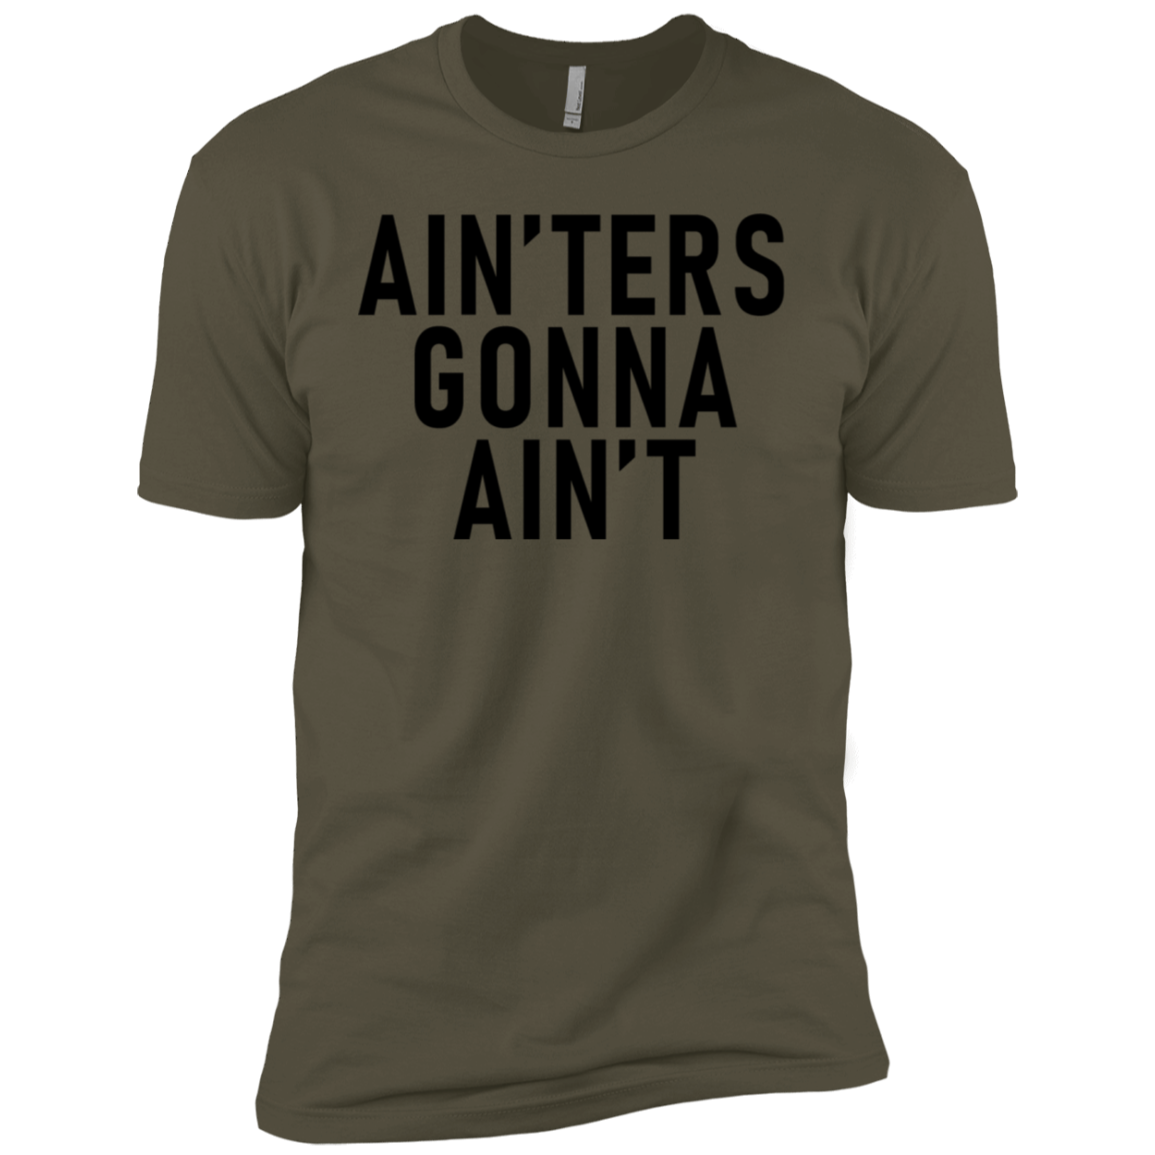 Ain'ters Gonna Ain't Men's Classic Tee